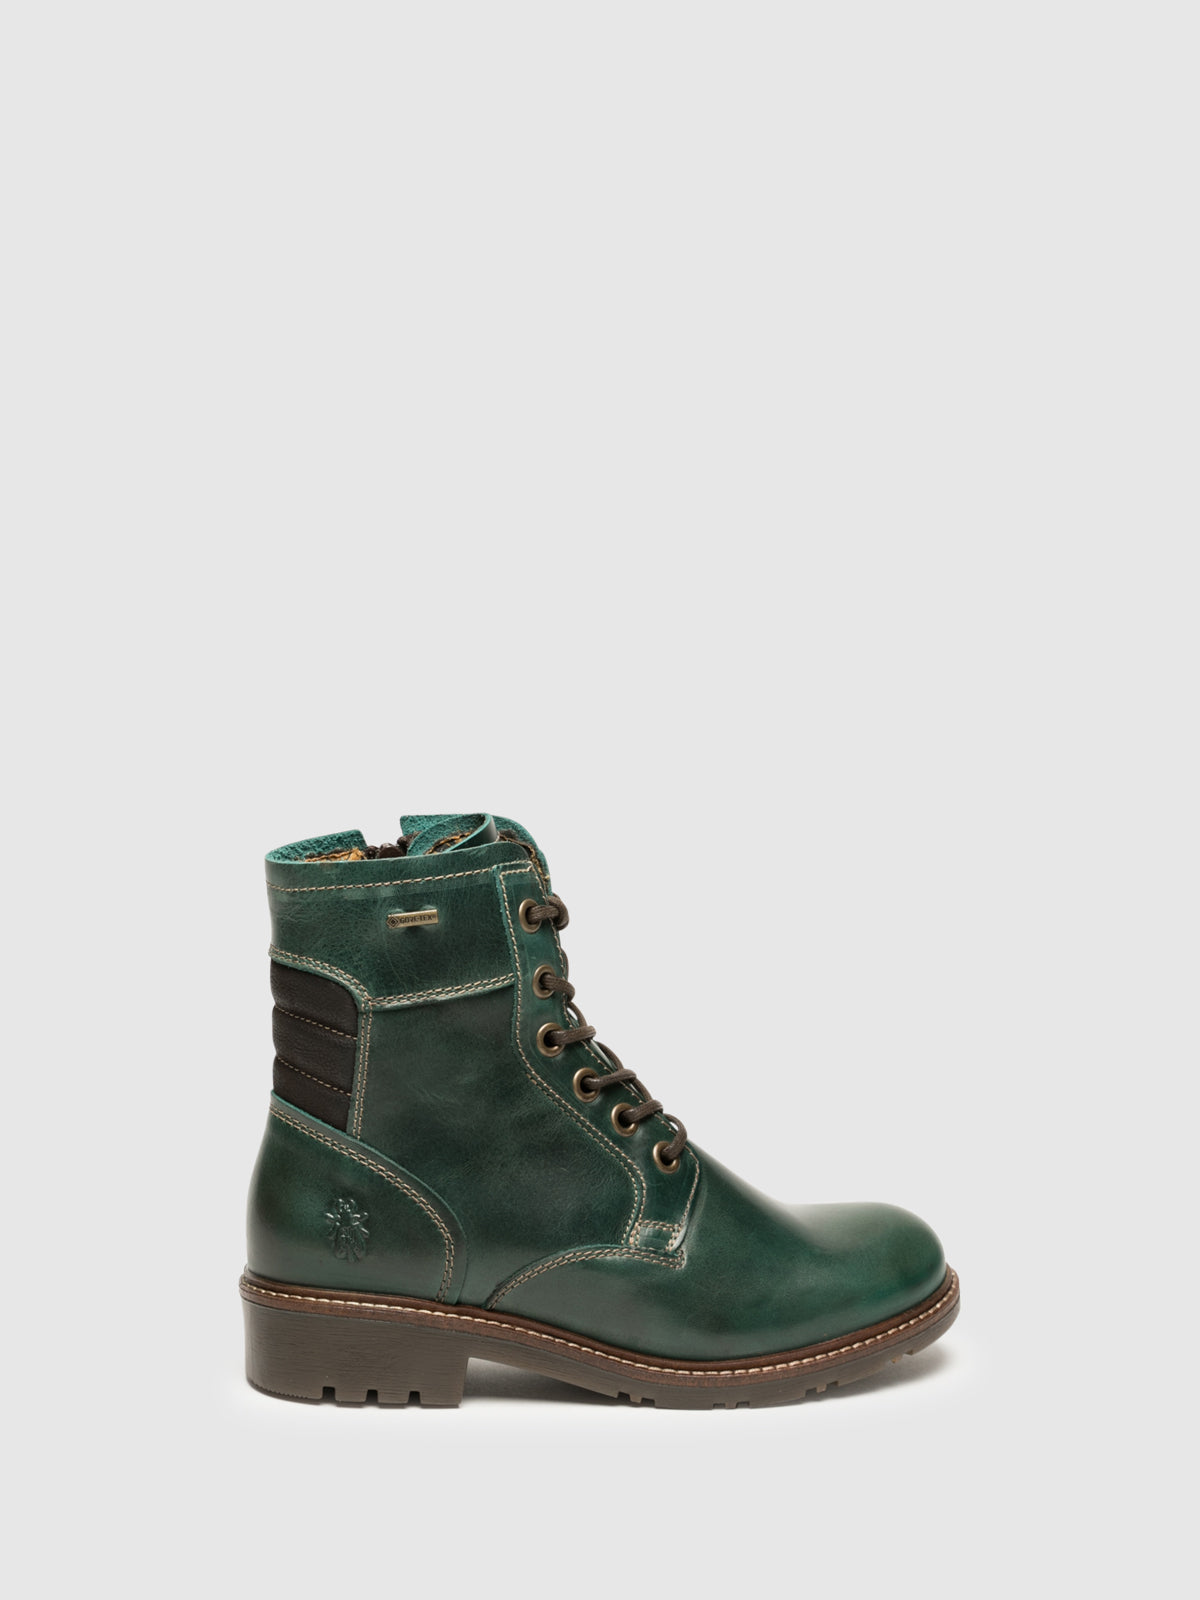 Fly London Botines con Cordones en color Verde Oscuro